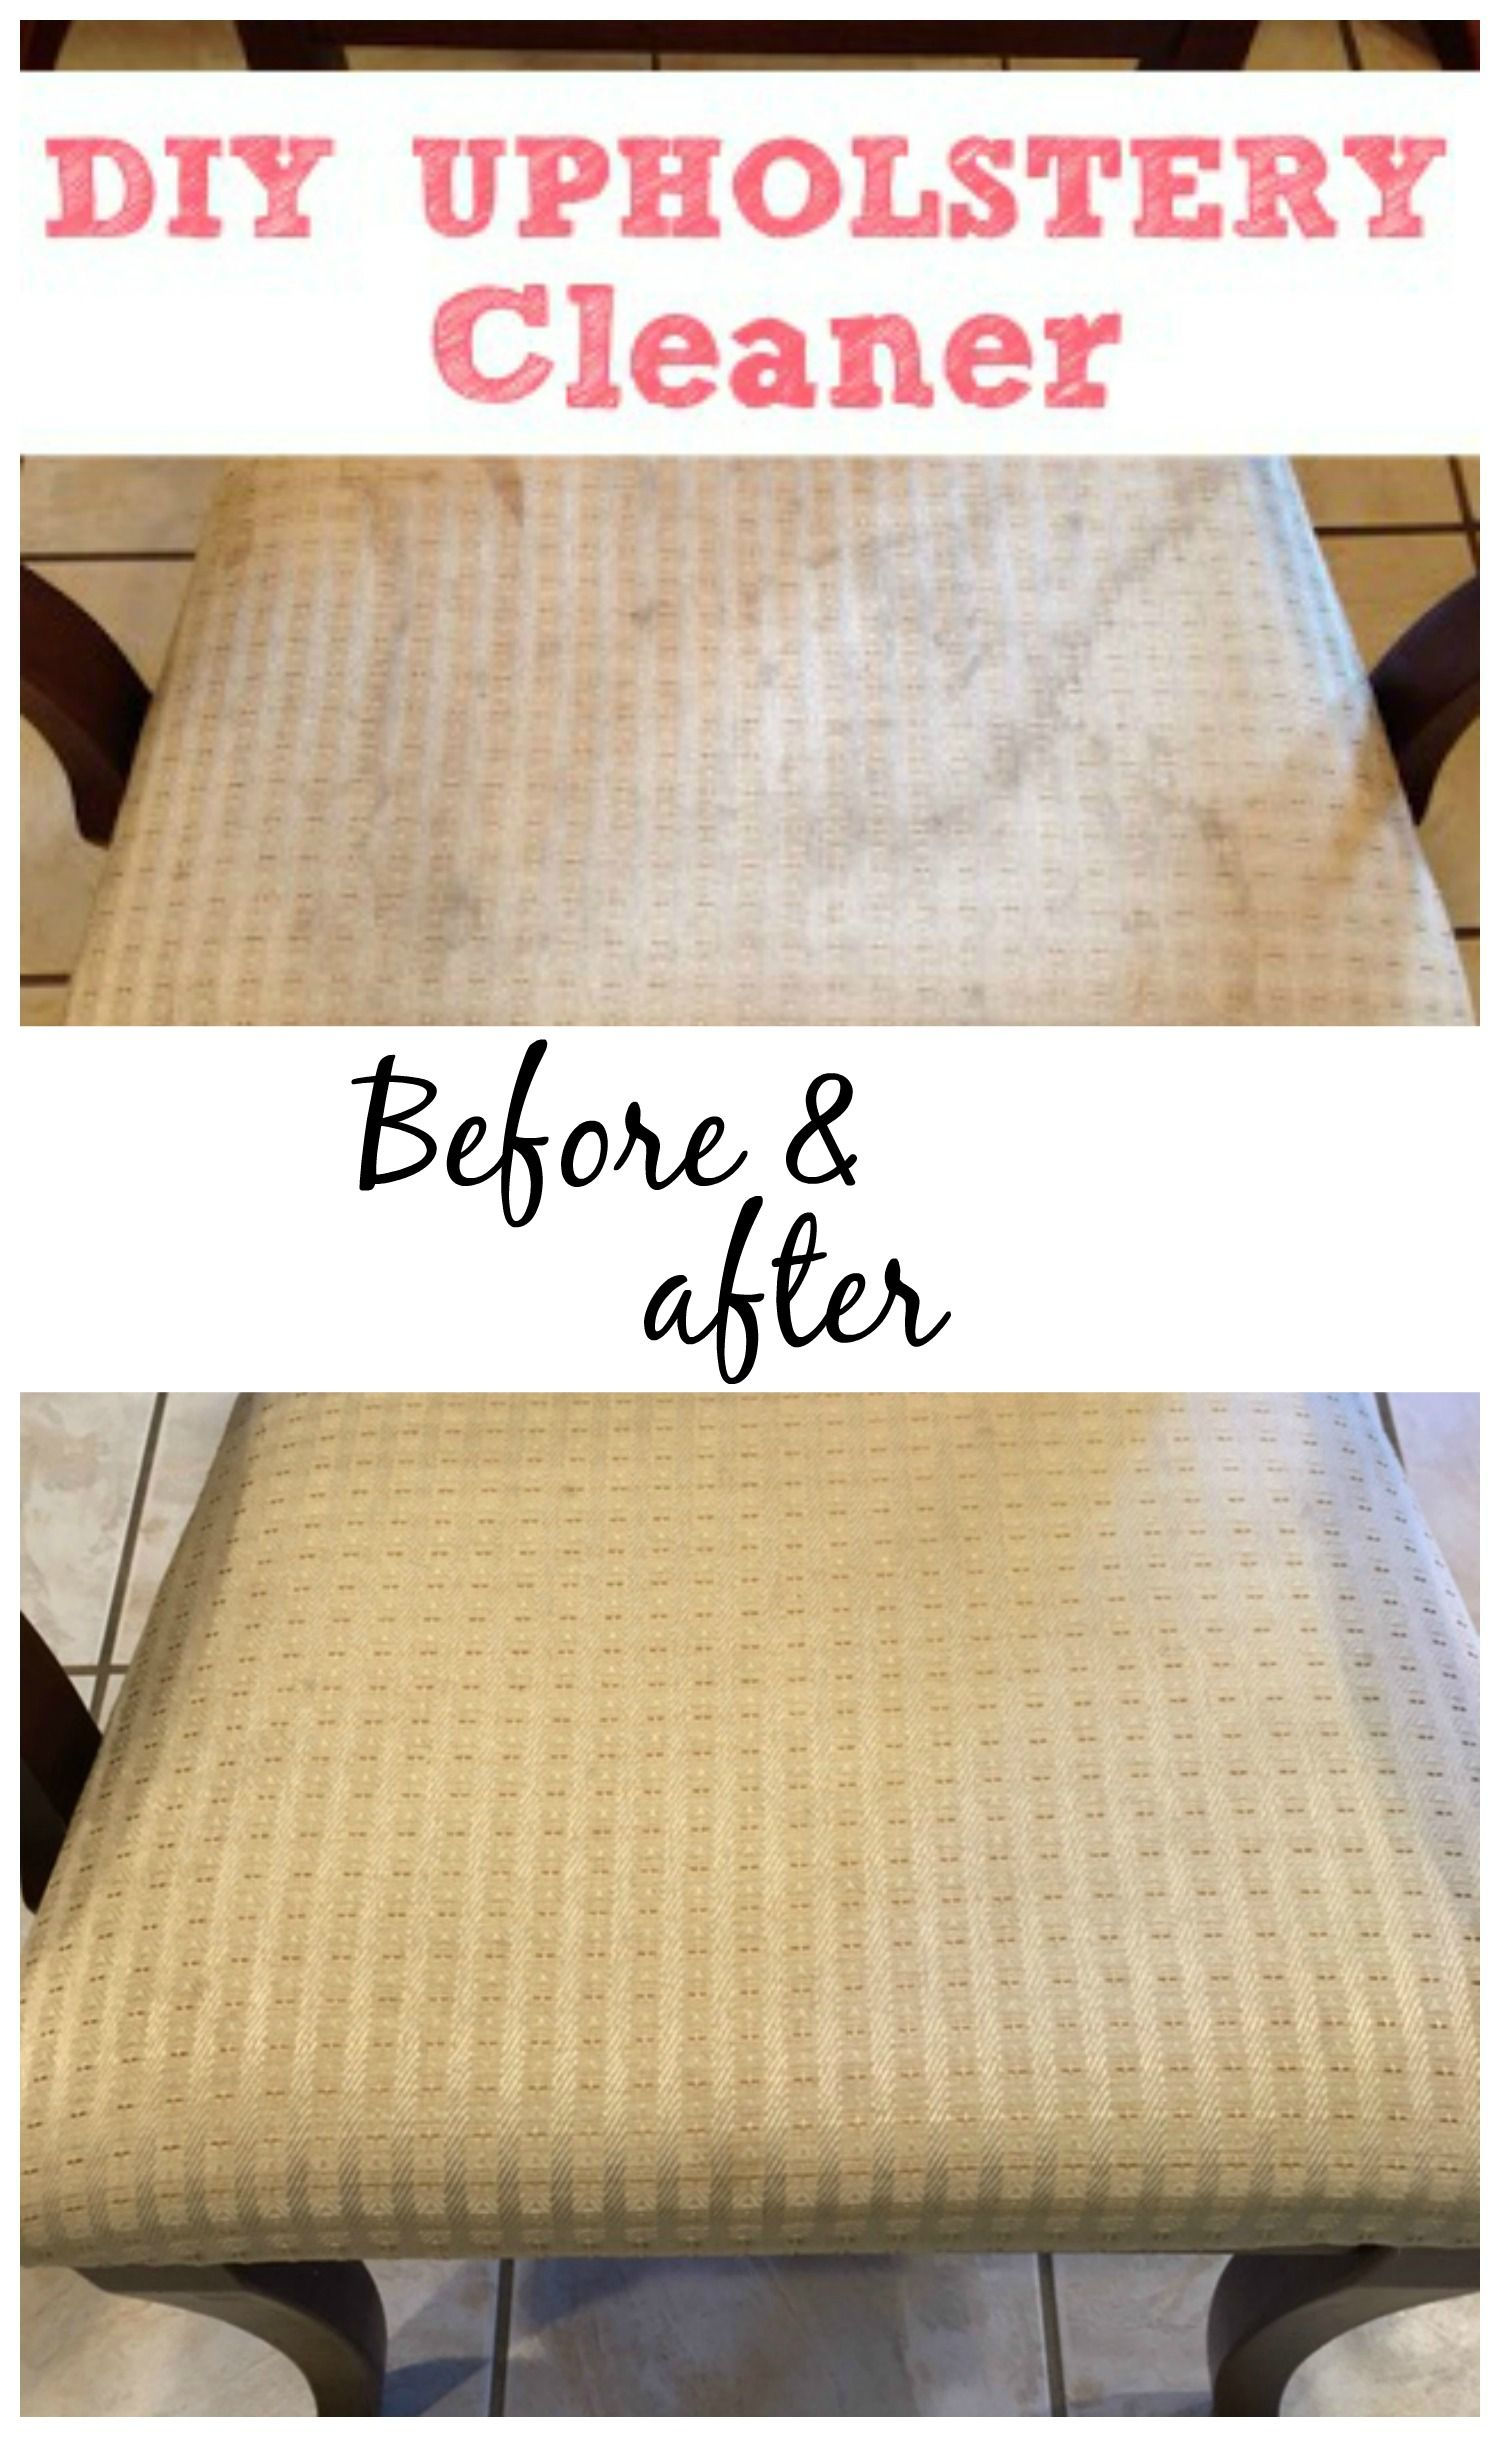 Wonderful Get The Stains Out Of Your Furniture With This Simple DIY Upholstery Cleaner.  It Only